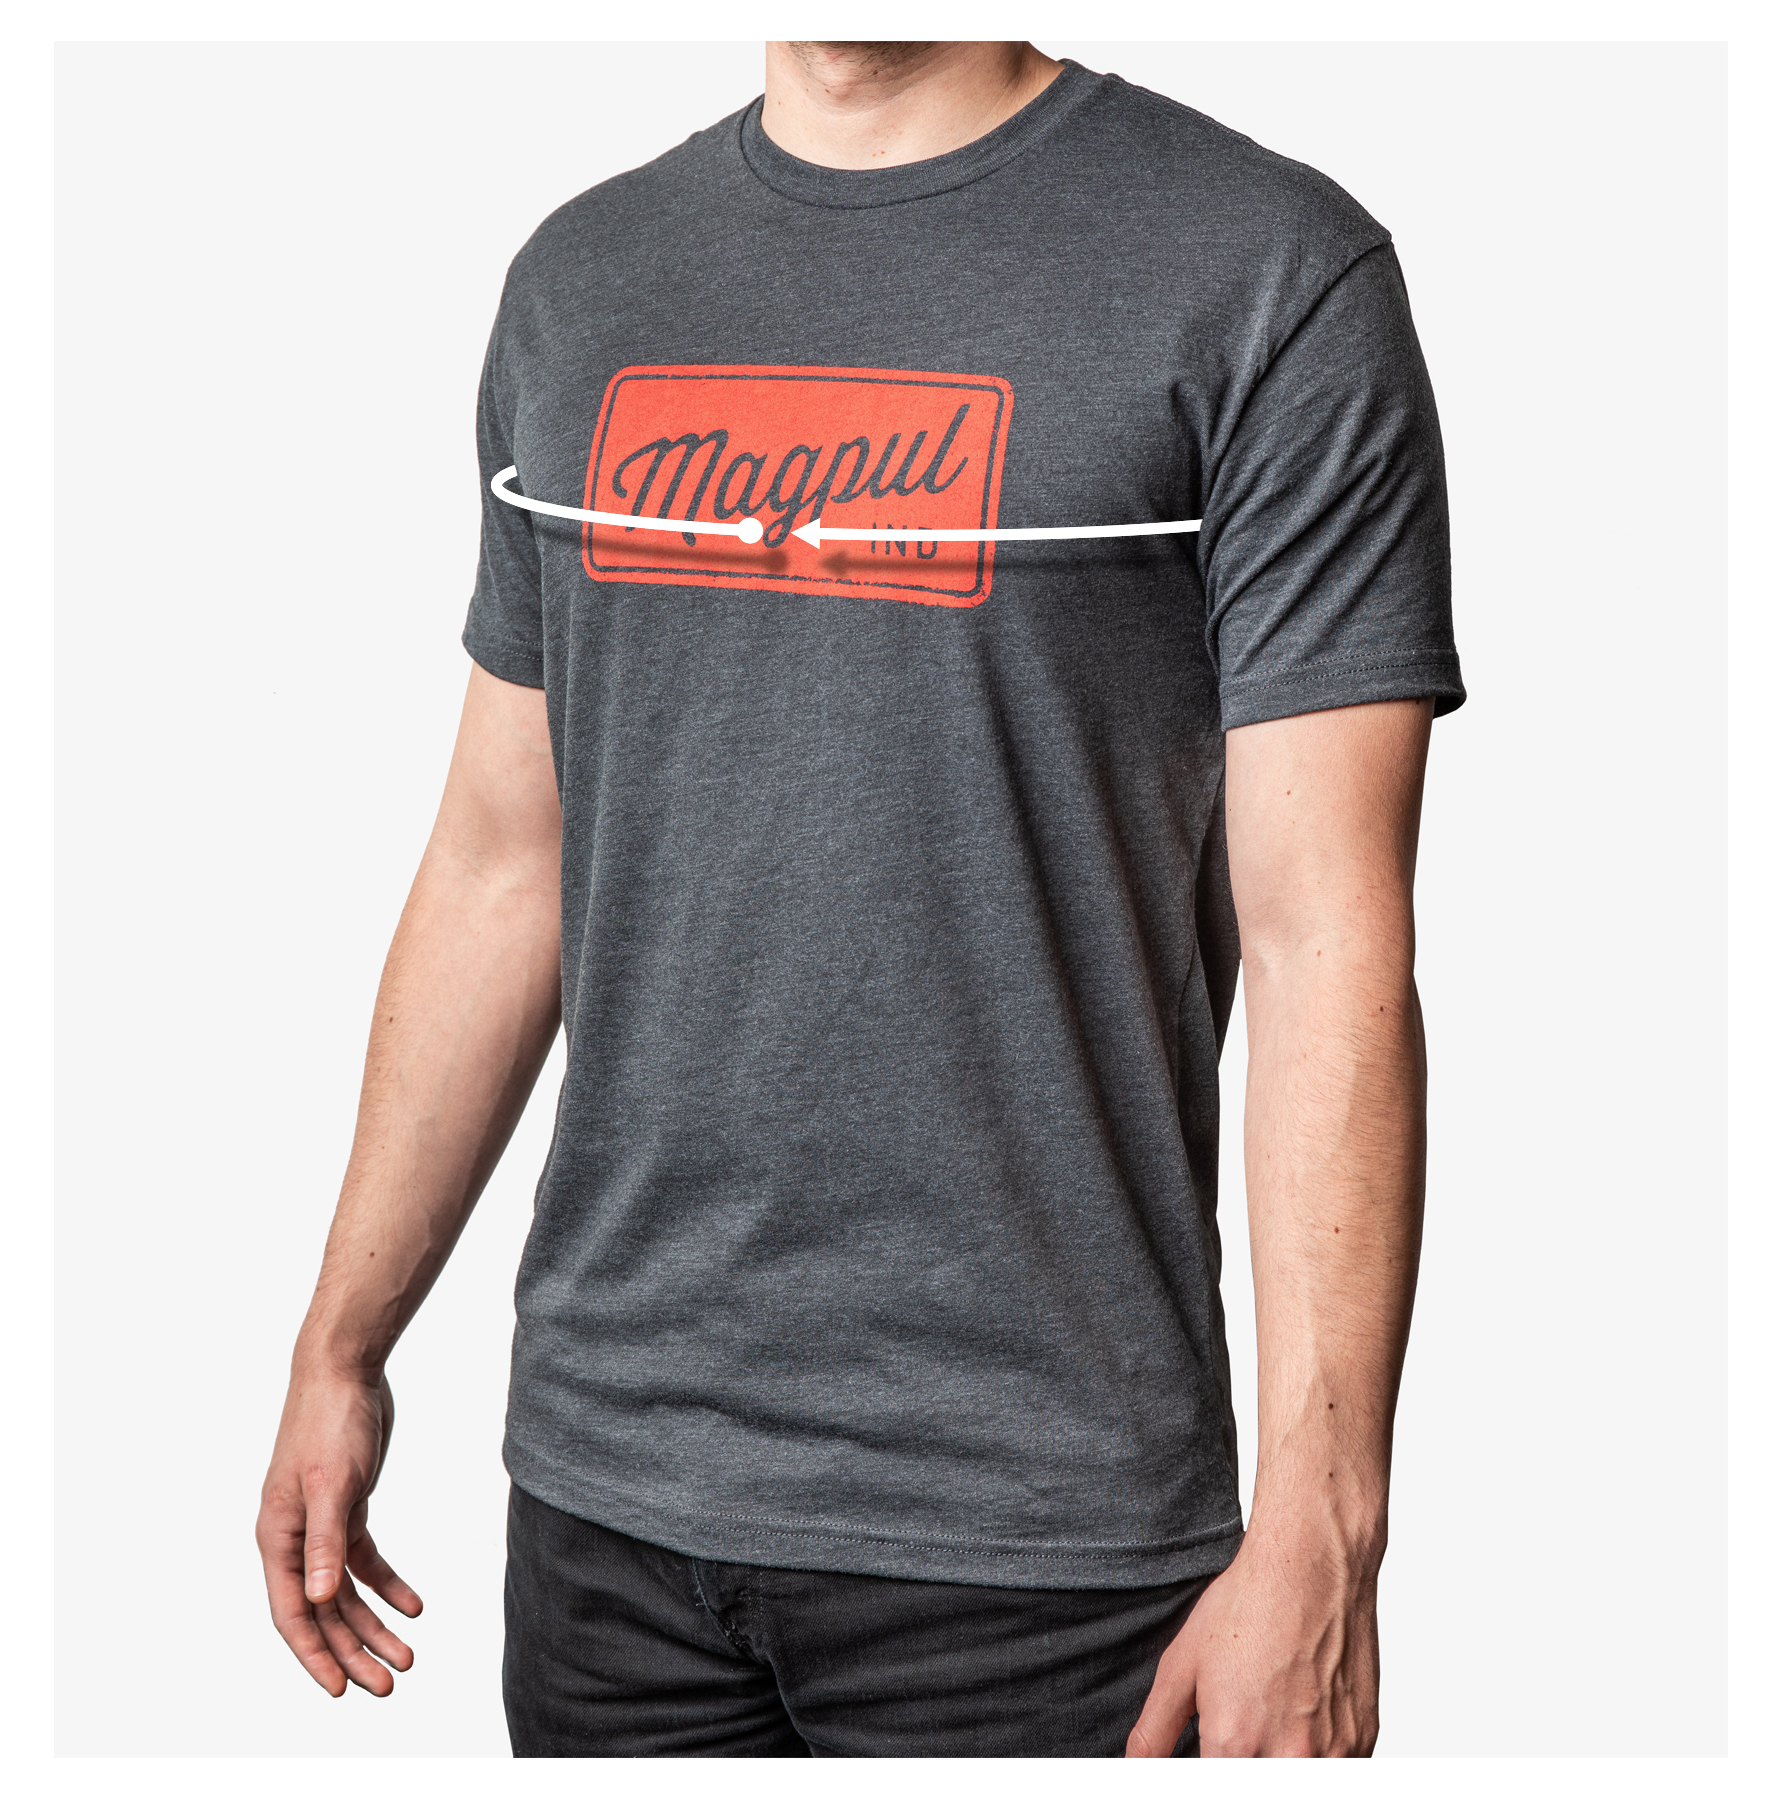 Man wearing Magpul T-Shirt with line showing where to meaure chest size